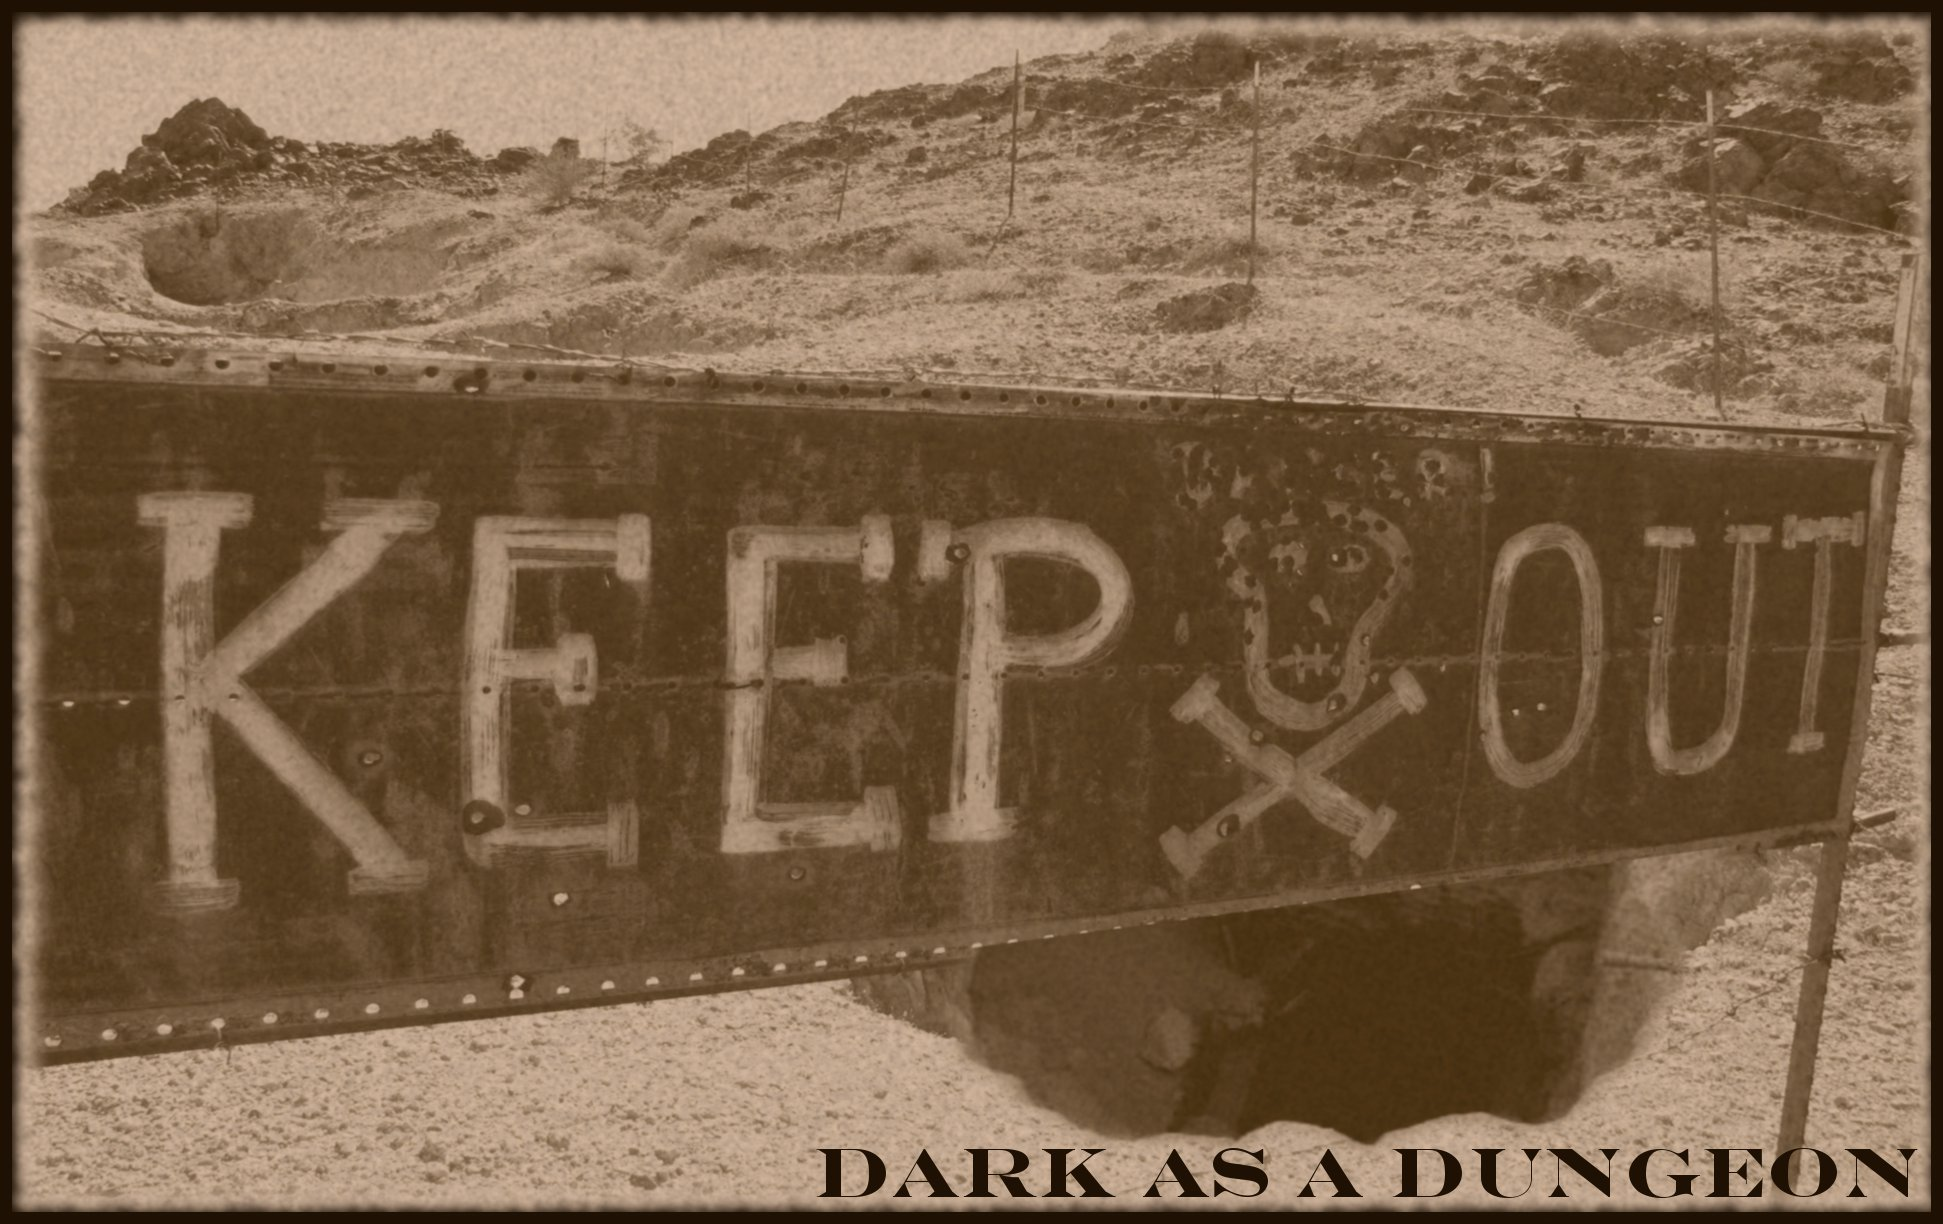 Dark as a dungeon logo